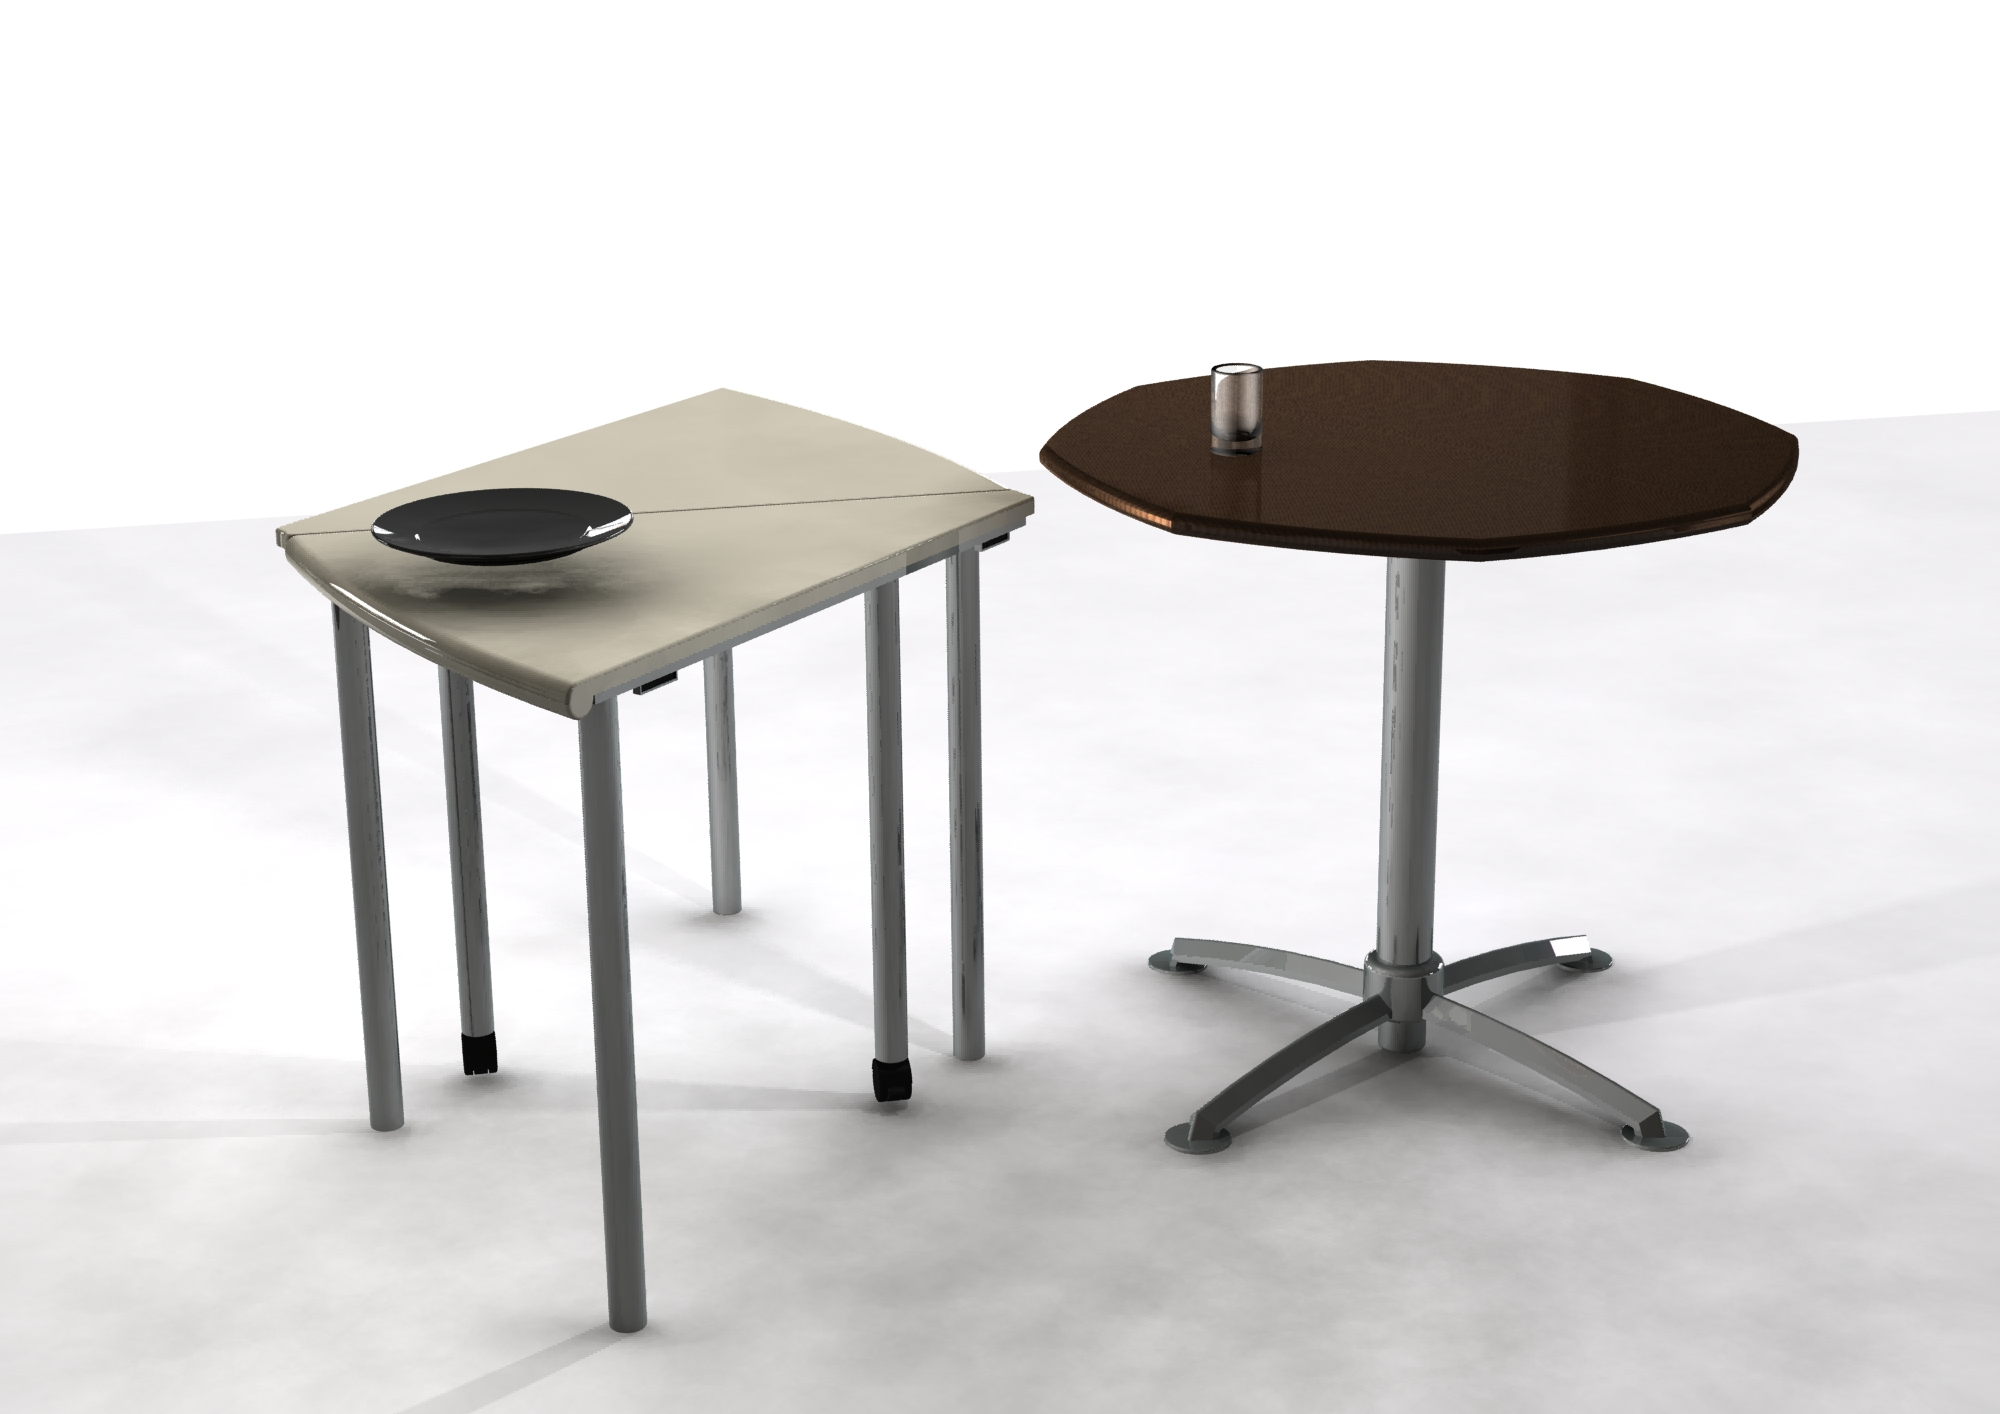 Flexible table set by kay fung at - Petite table pliable ...